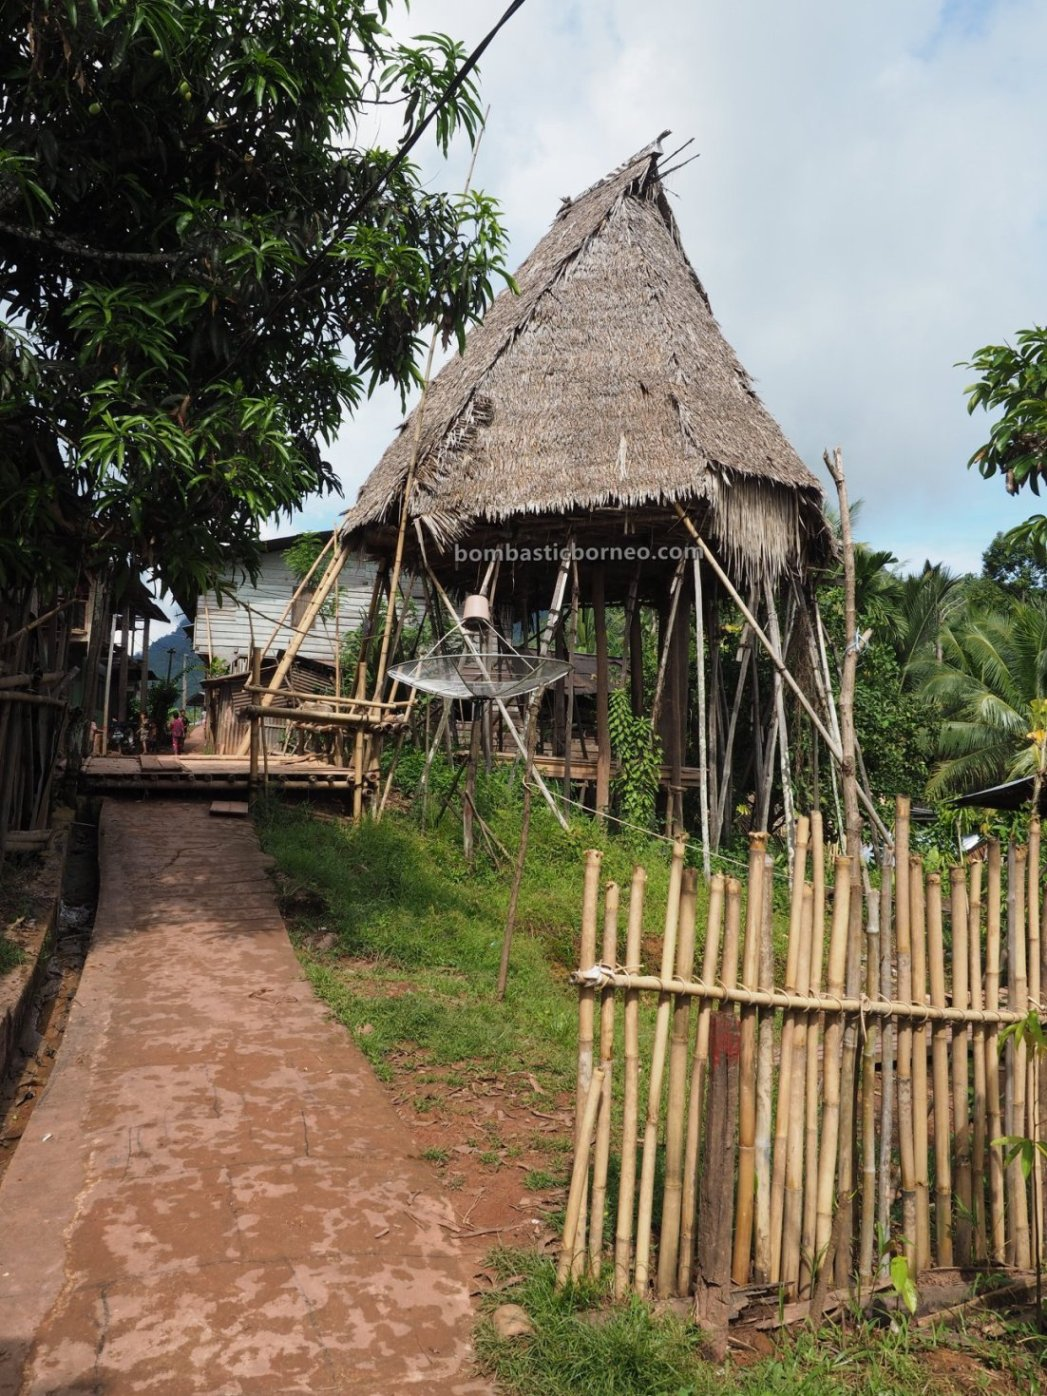 authentic, village, culture, Indonesia, Bengkayang, Siding, native, Dayak Bidayuh, tribal, travel guide, cross border, Borneo, skull house, 跨境婆罗洲游踪, 印尼原住民部落, 西加里曼丹达雅